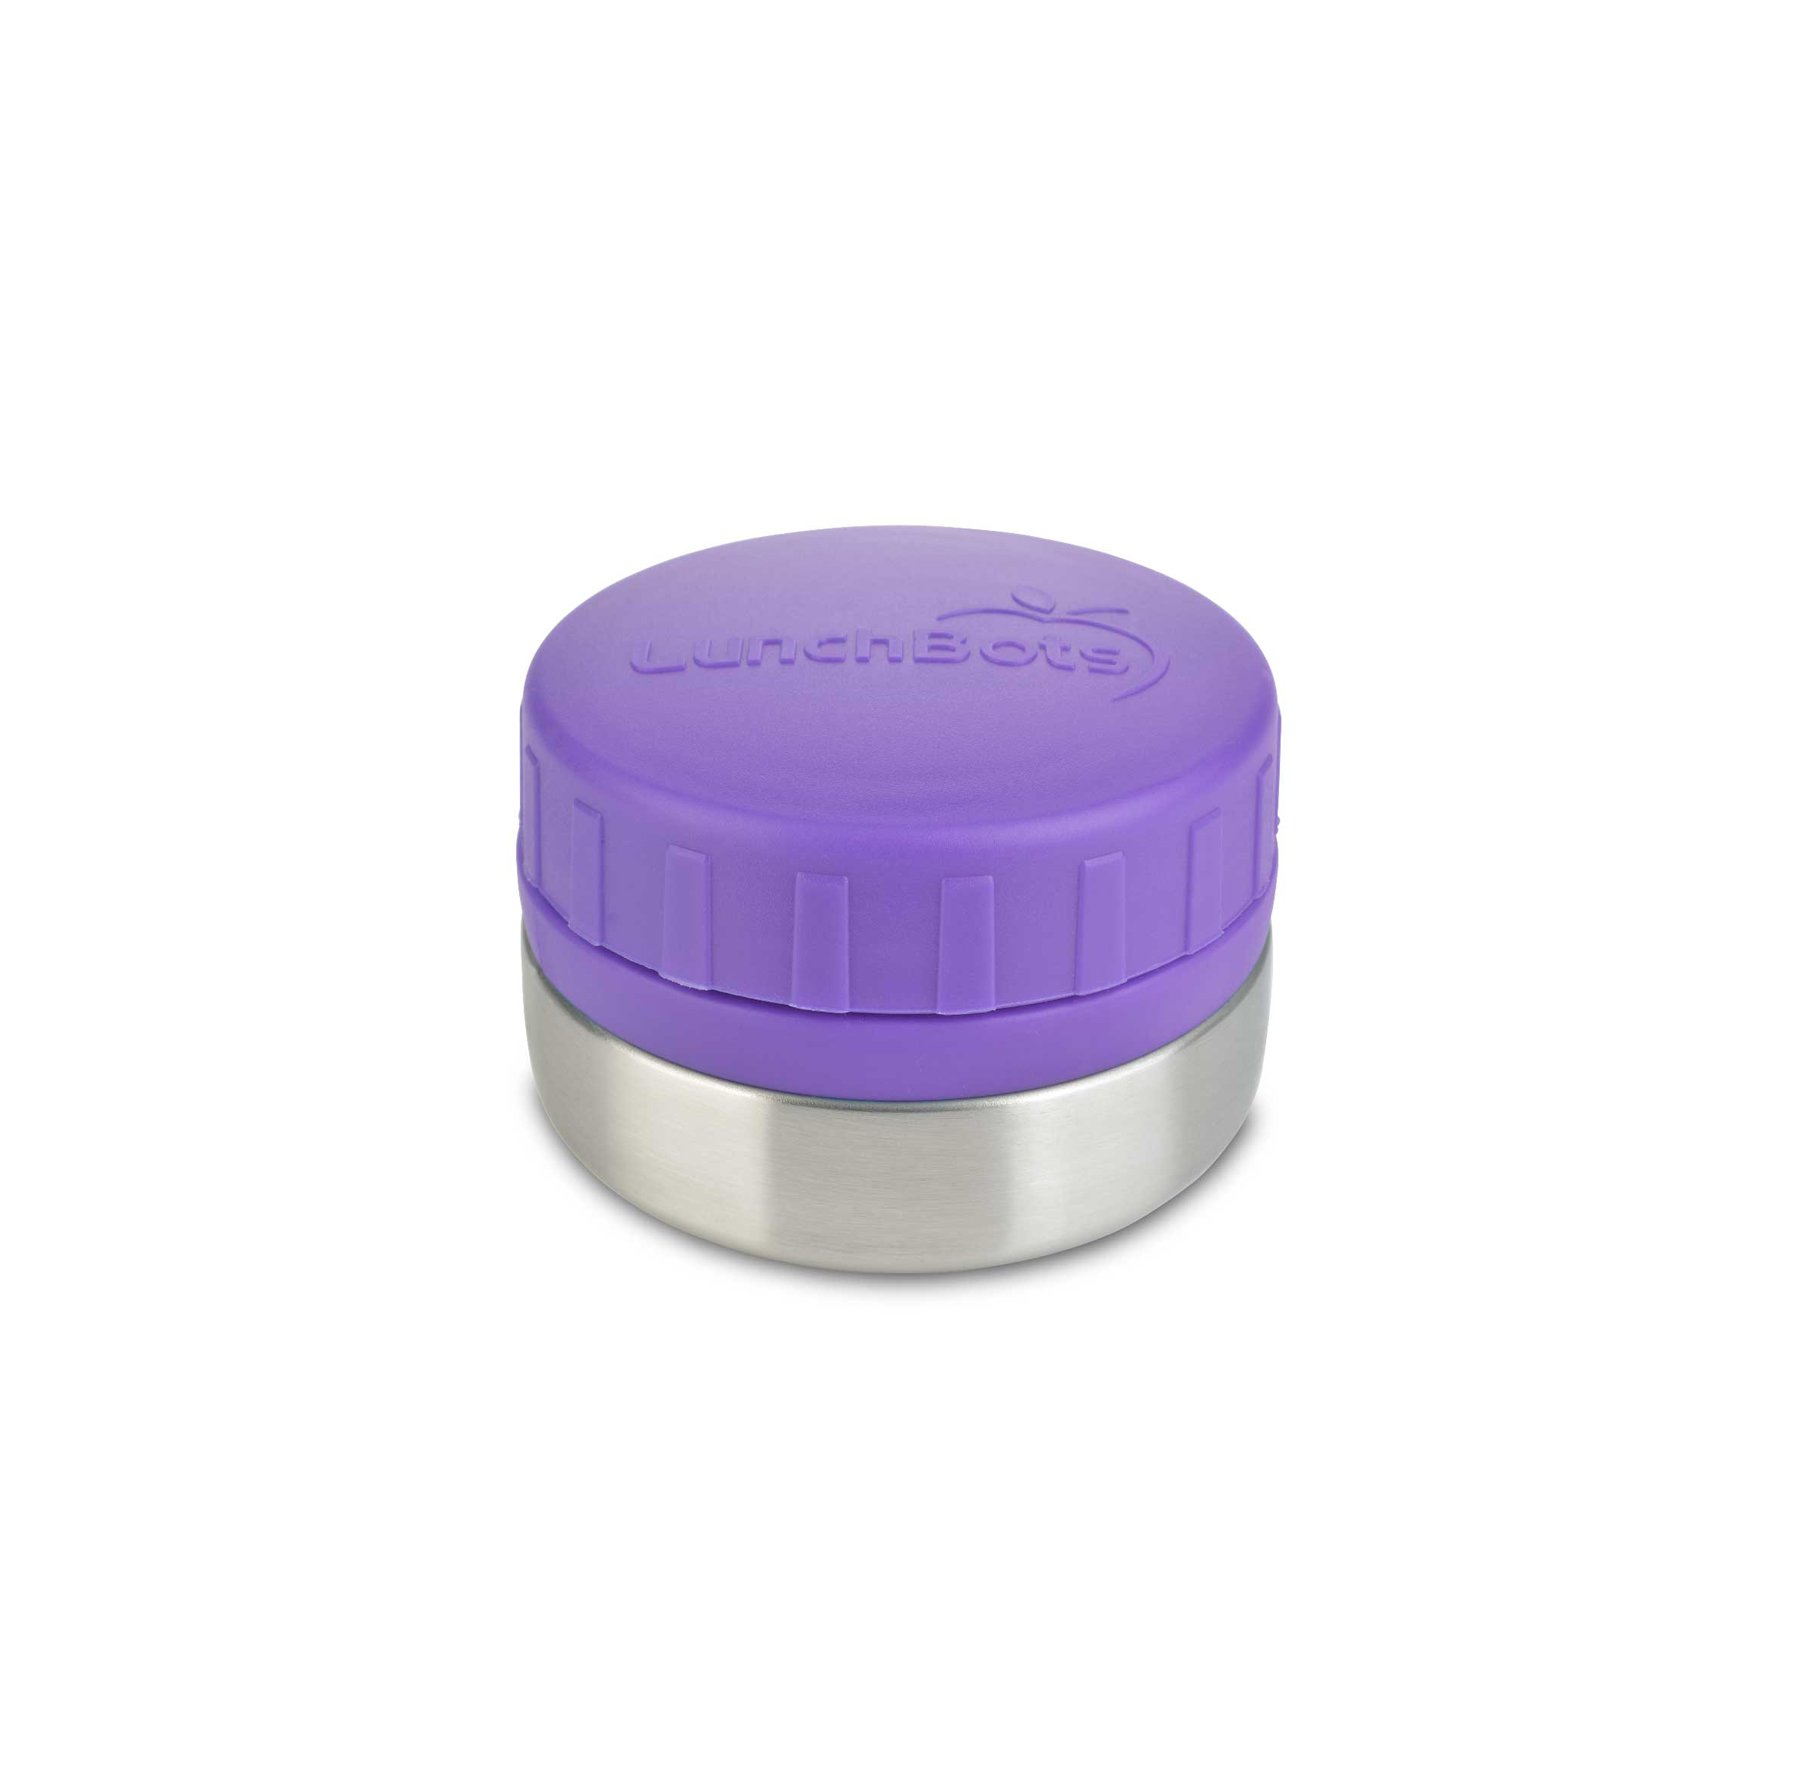 LunchBots Rounds Stainless Steel Food Container (4 oz) - Non-Insulated Leak-Proof Food Jar for Snacks, Dips, Fruits and Finger Foods - Eco-Friendly, Dishwasher Safe and BPA-Free - Purple